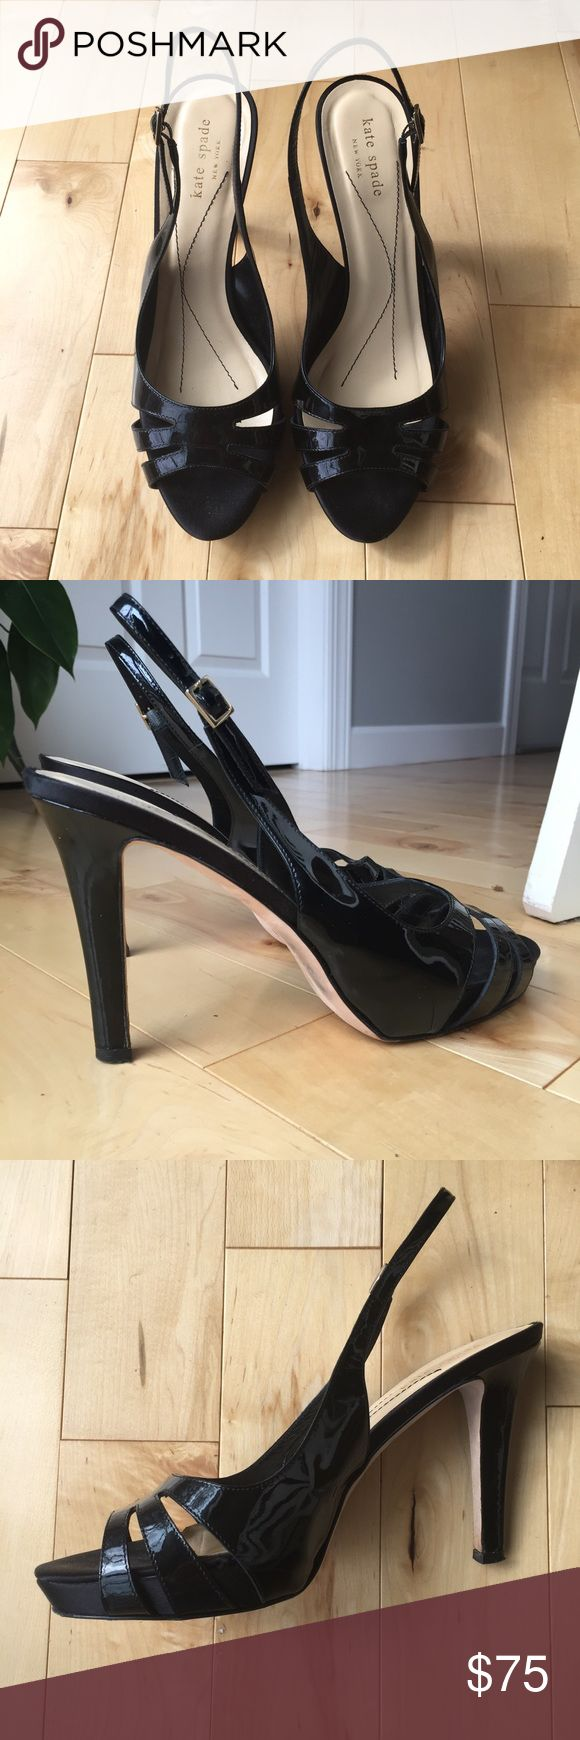 Kate Spade New York sling back heels Kate Spade New York black patent sling back heels. Size 9. Heel height: 4 1/4 inches. Shoe length: approx. 9 3/4 inches. Signs of wear on soles. Insole lining curls up a bit at the toes. See last detail pic. Offers welcome, no trades. 20% discount on bundles of 2 or more items. kate spade Shoes Heels